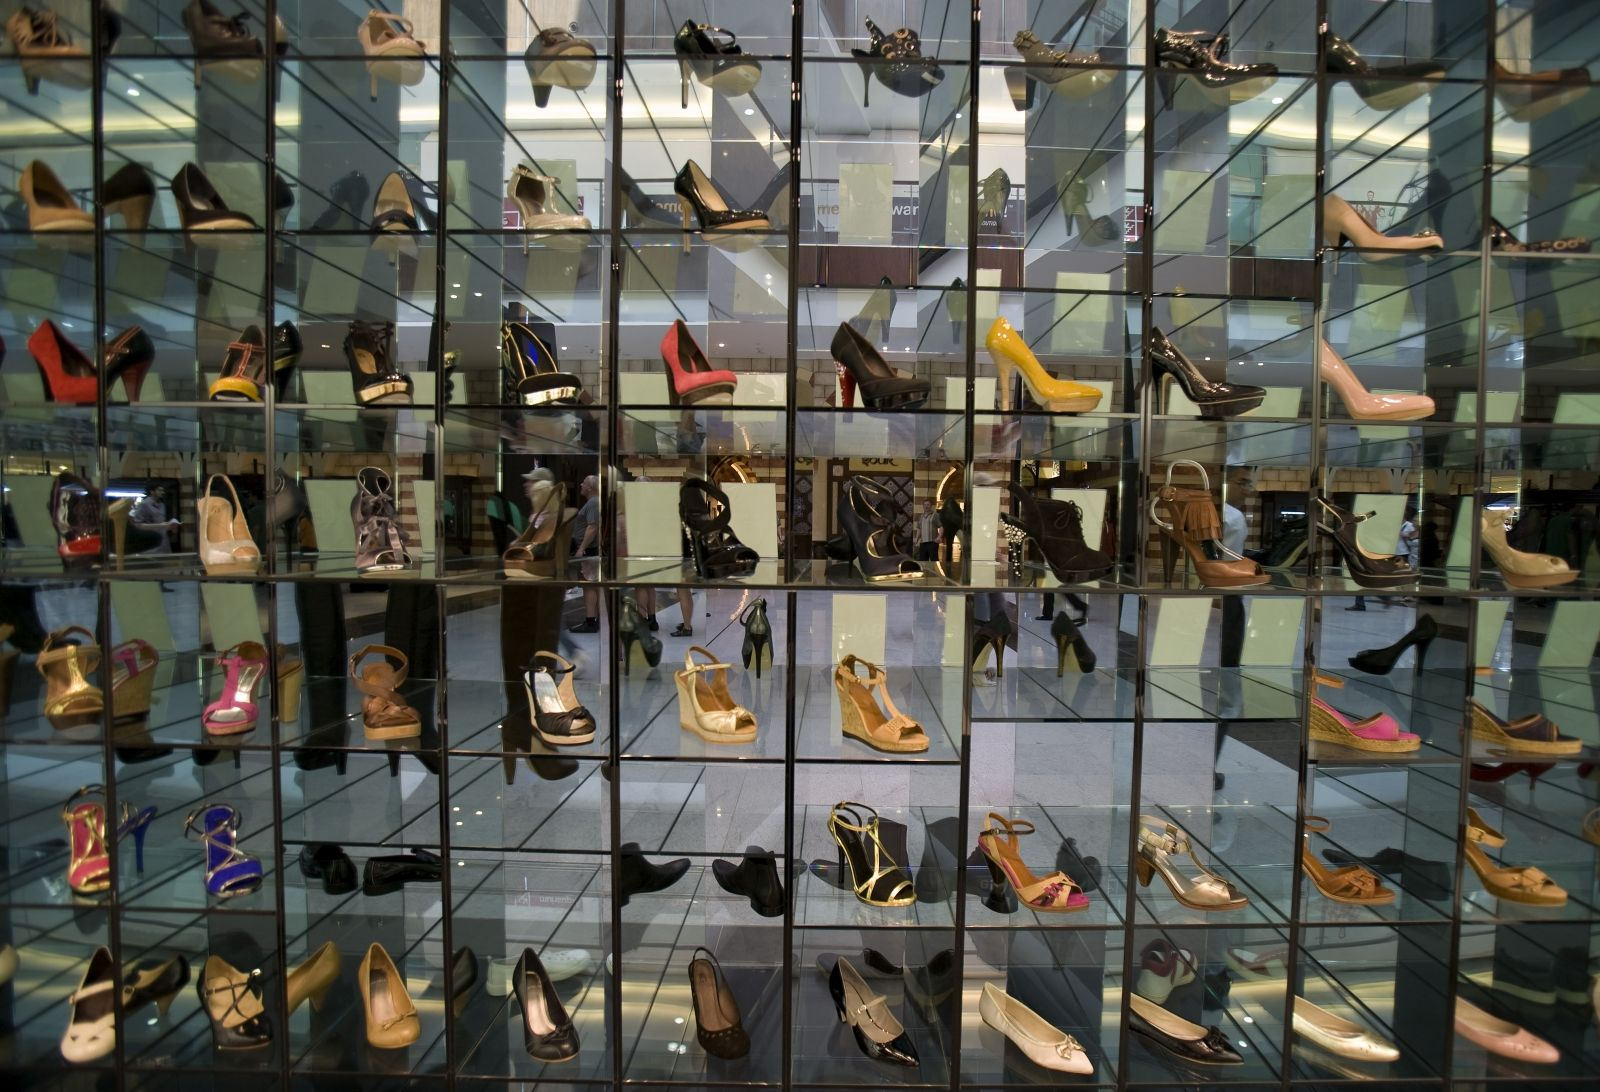 display-shoes-dubai-mall